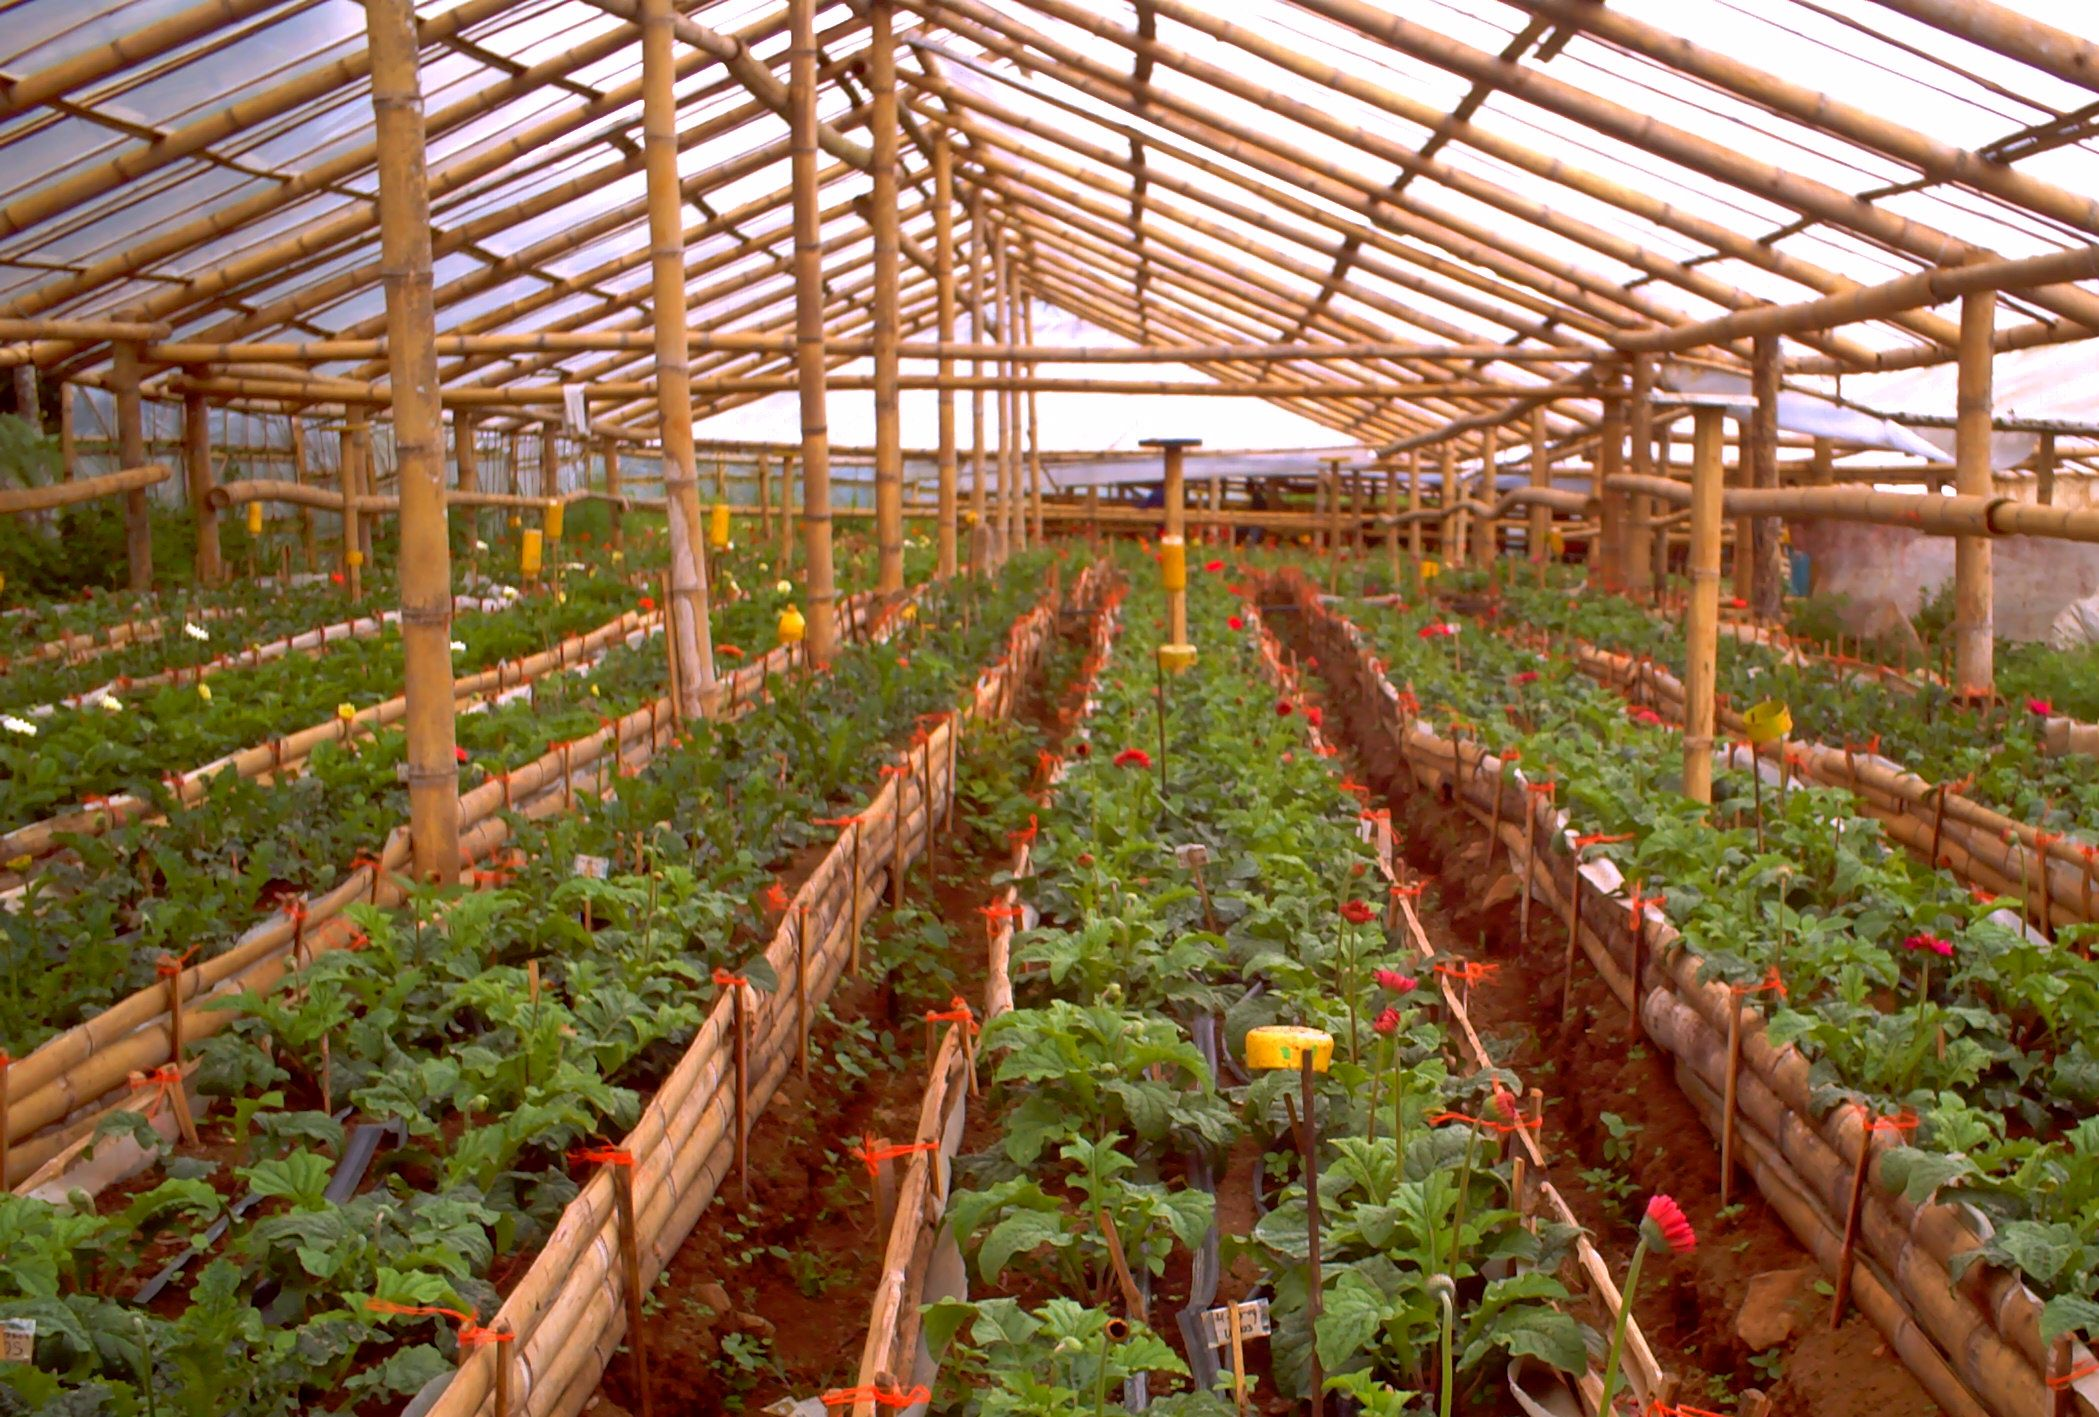 Bamboo Greenhouse Our Farm By Earth Flora Inc Bamboo Garden Greenhouse Farming Hydroponic Gardening